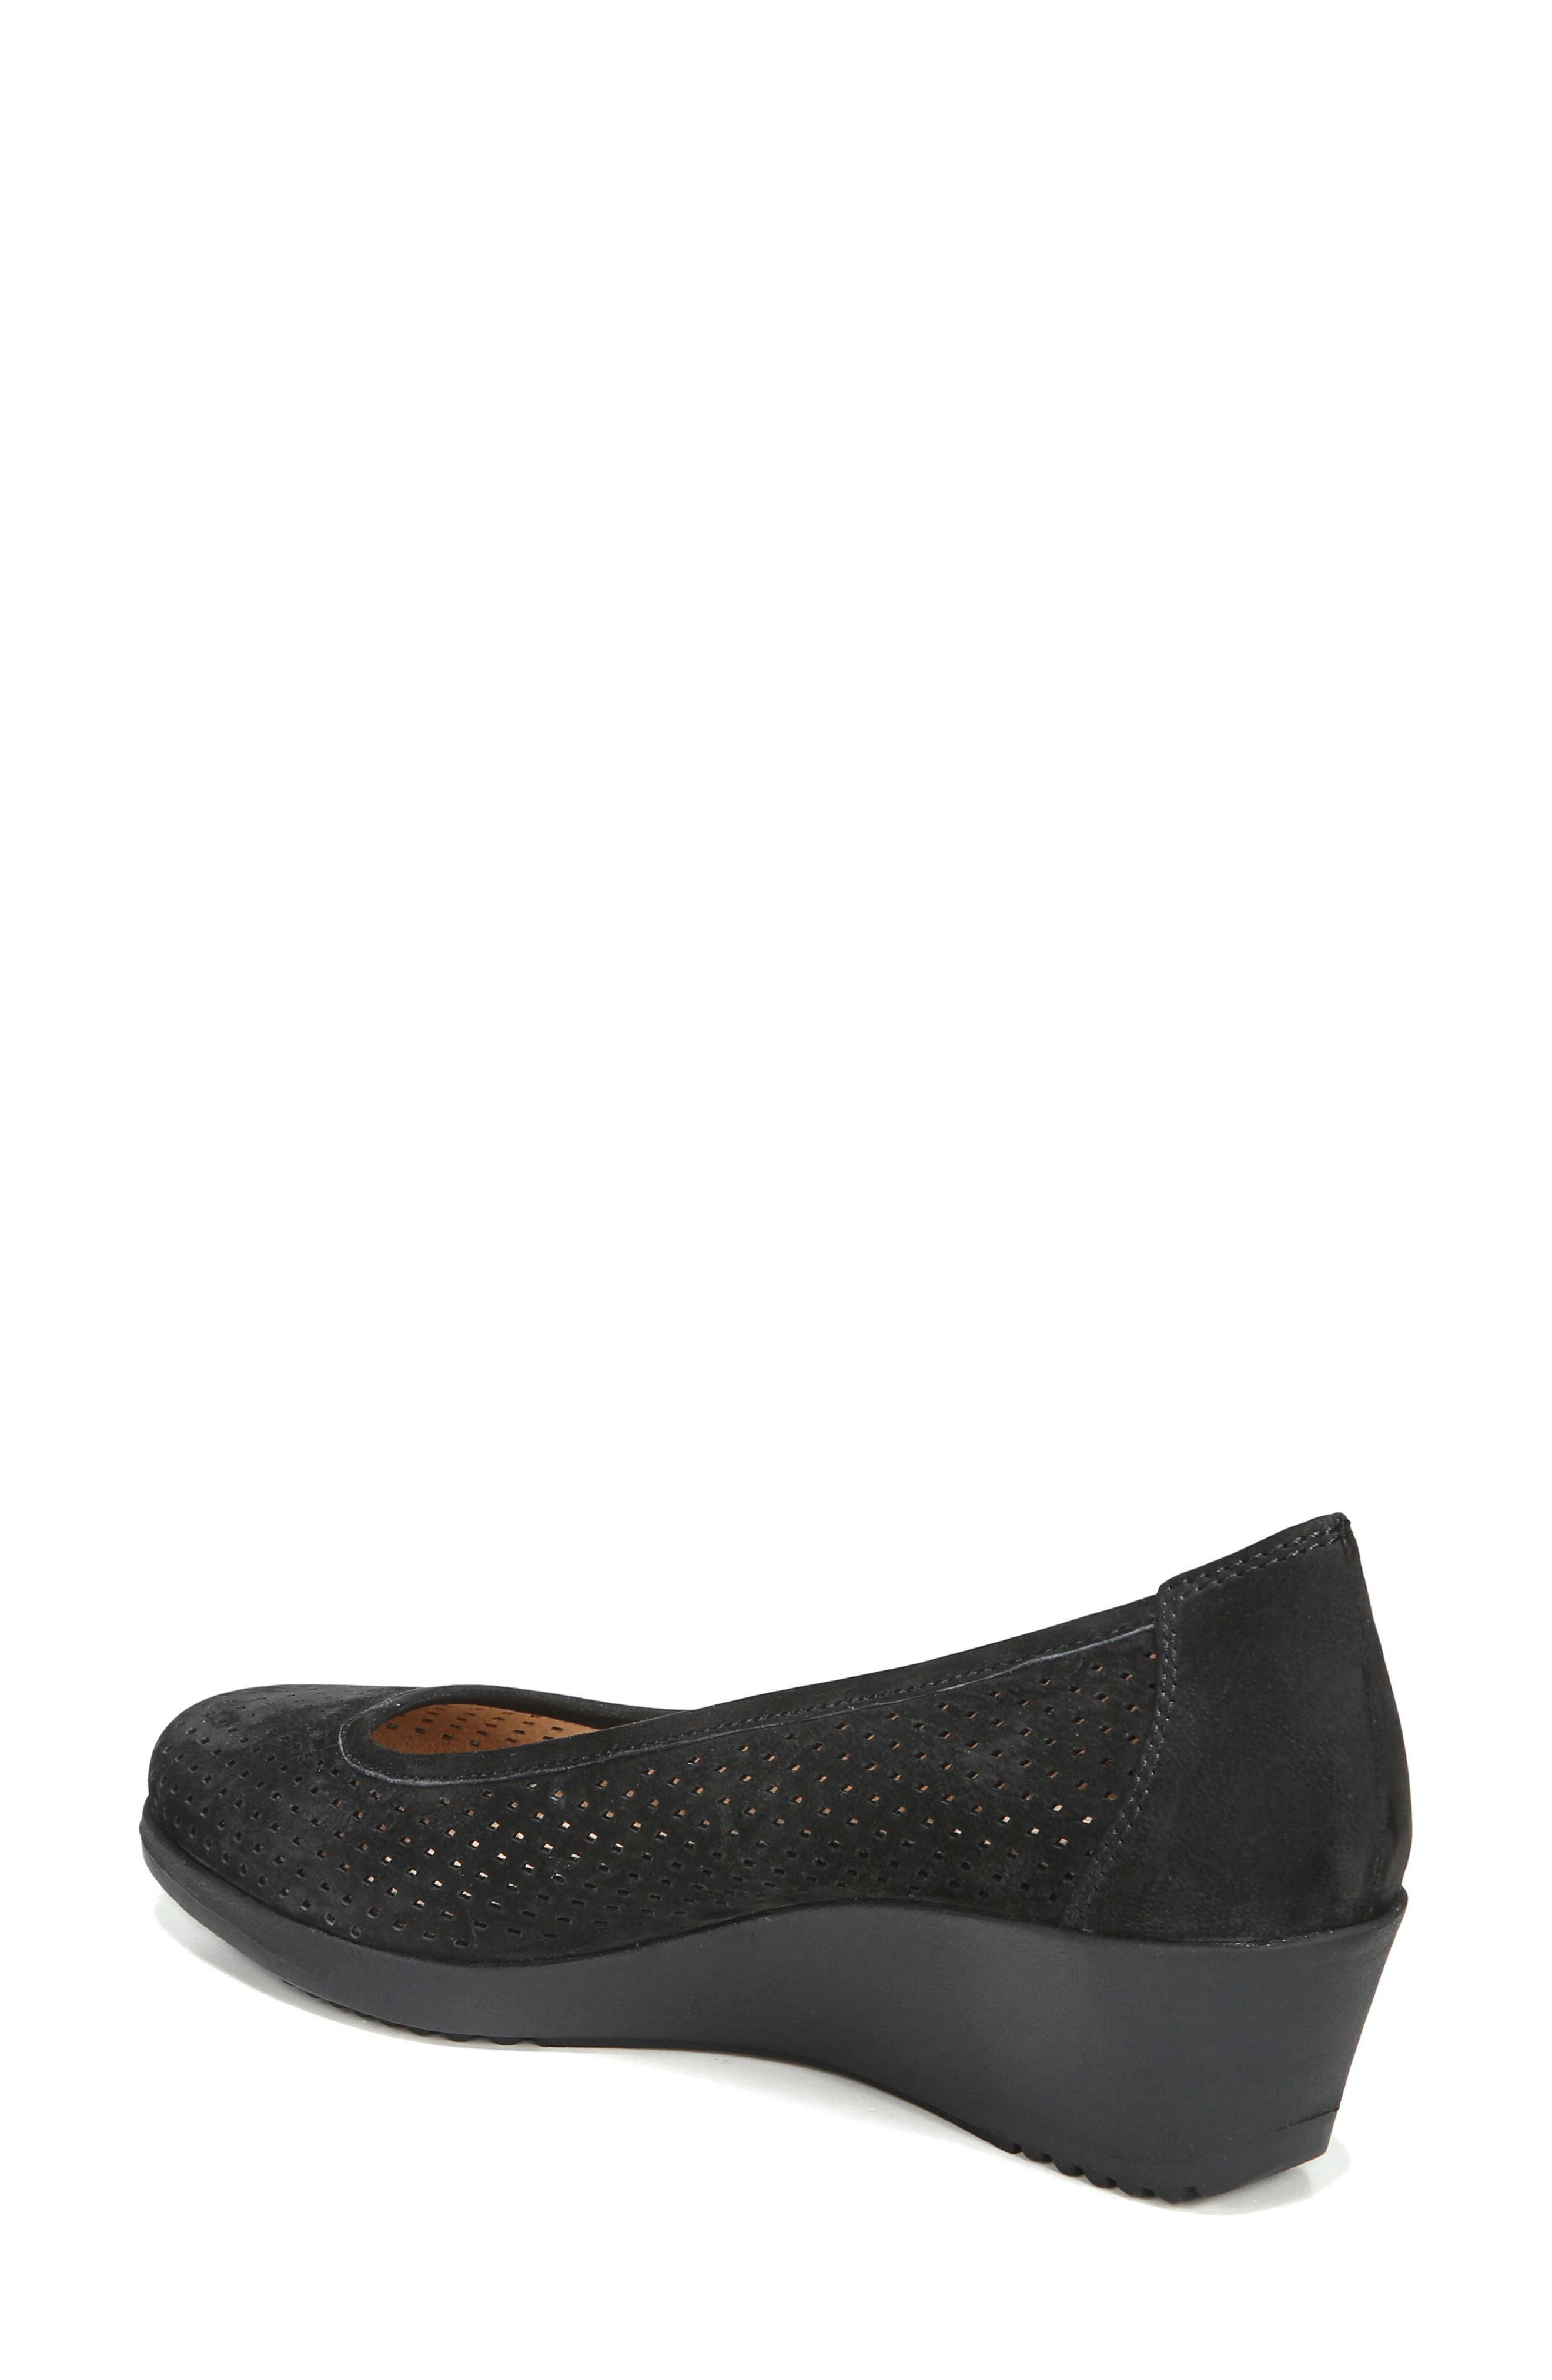 Betina II Wedge,                             Alternate thumbnail 2, color,                             Black Leather